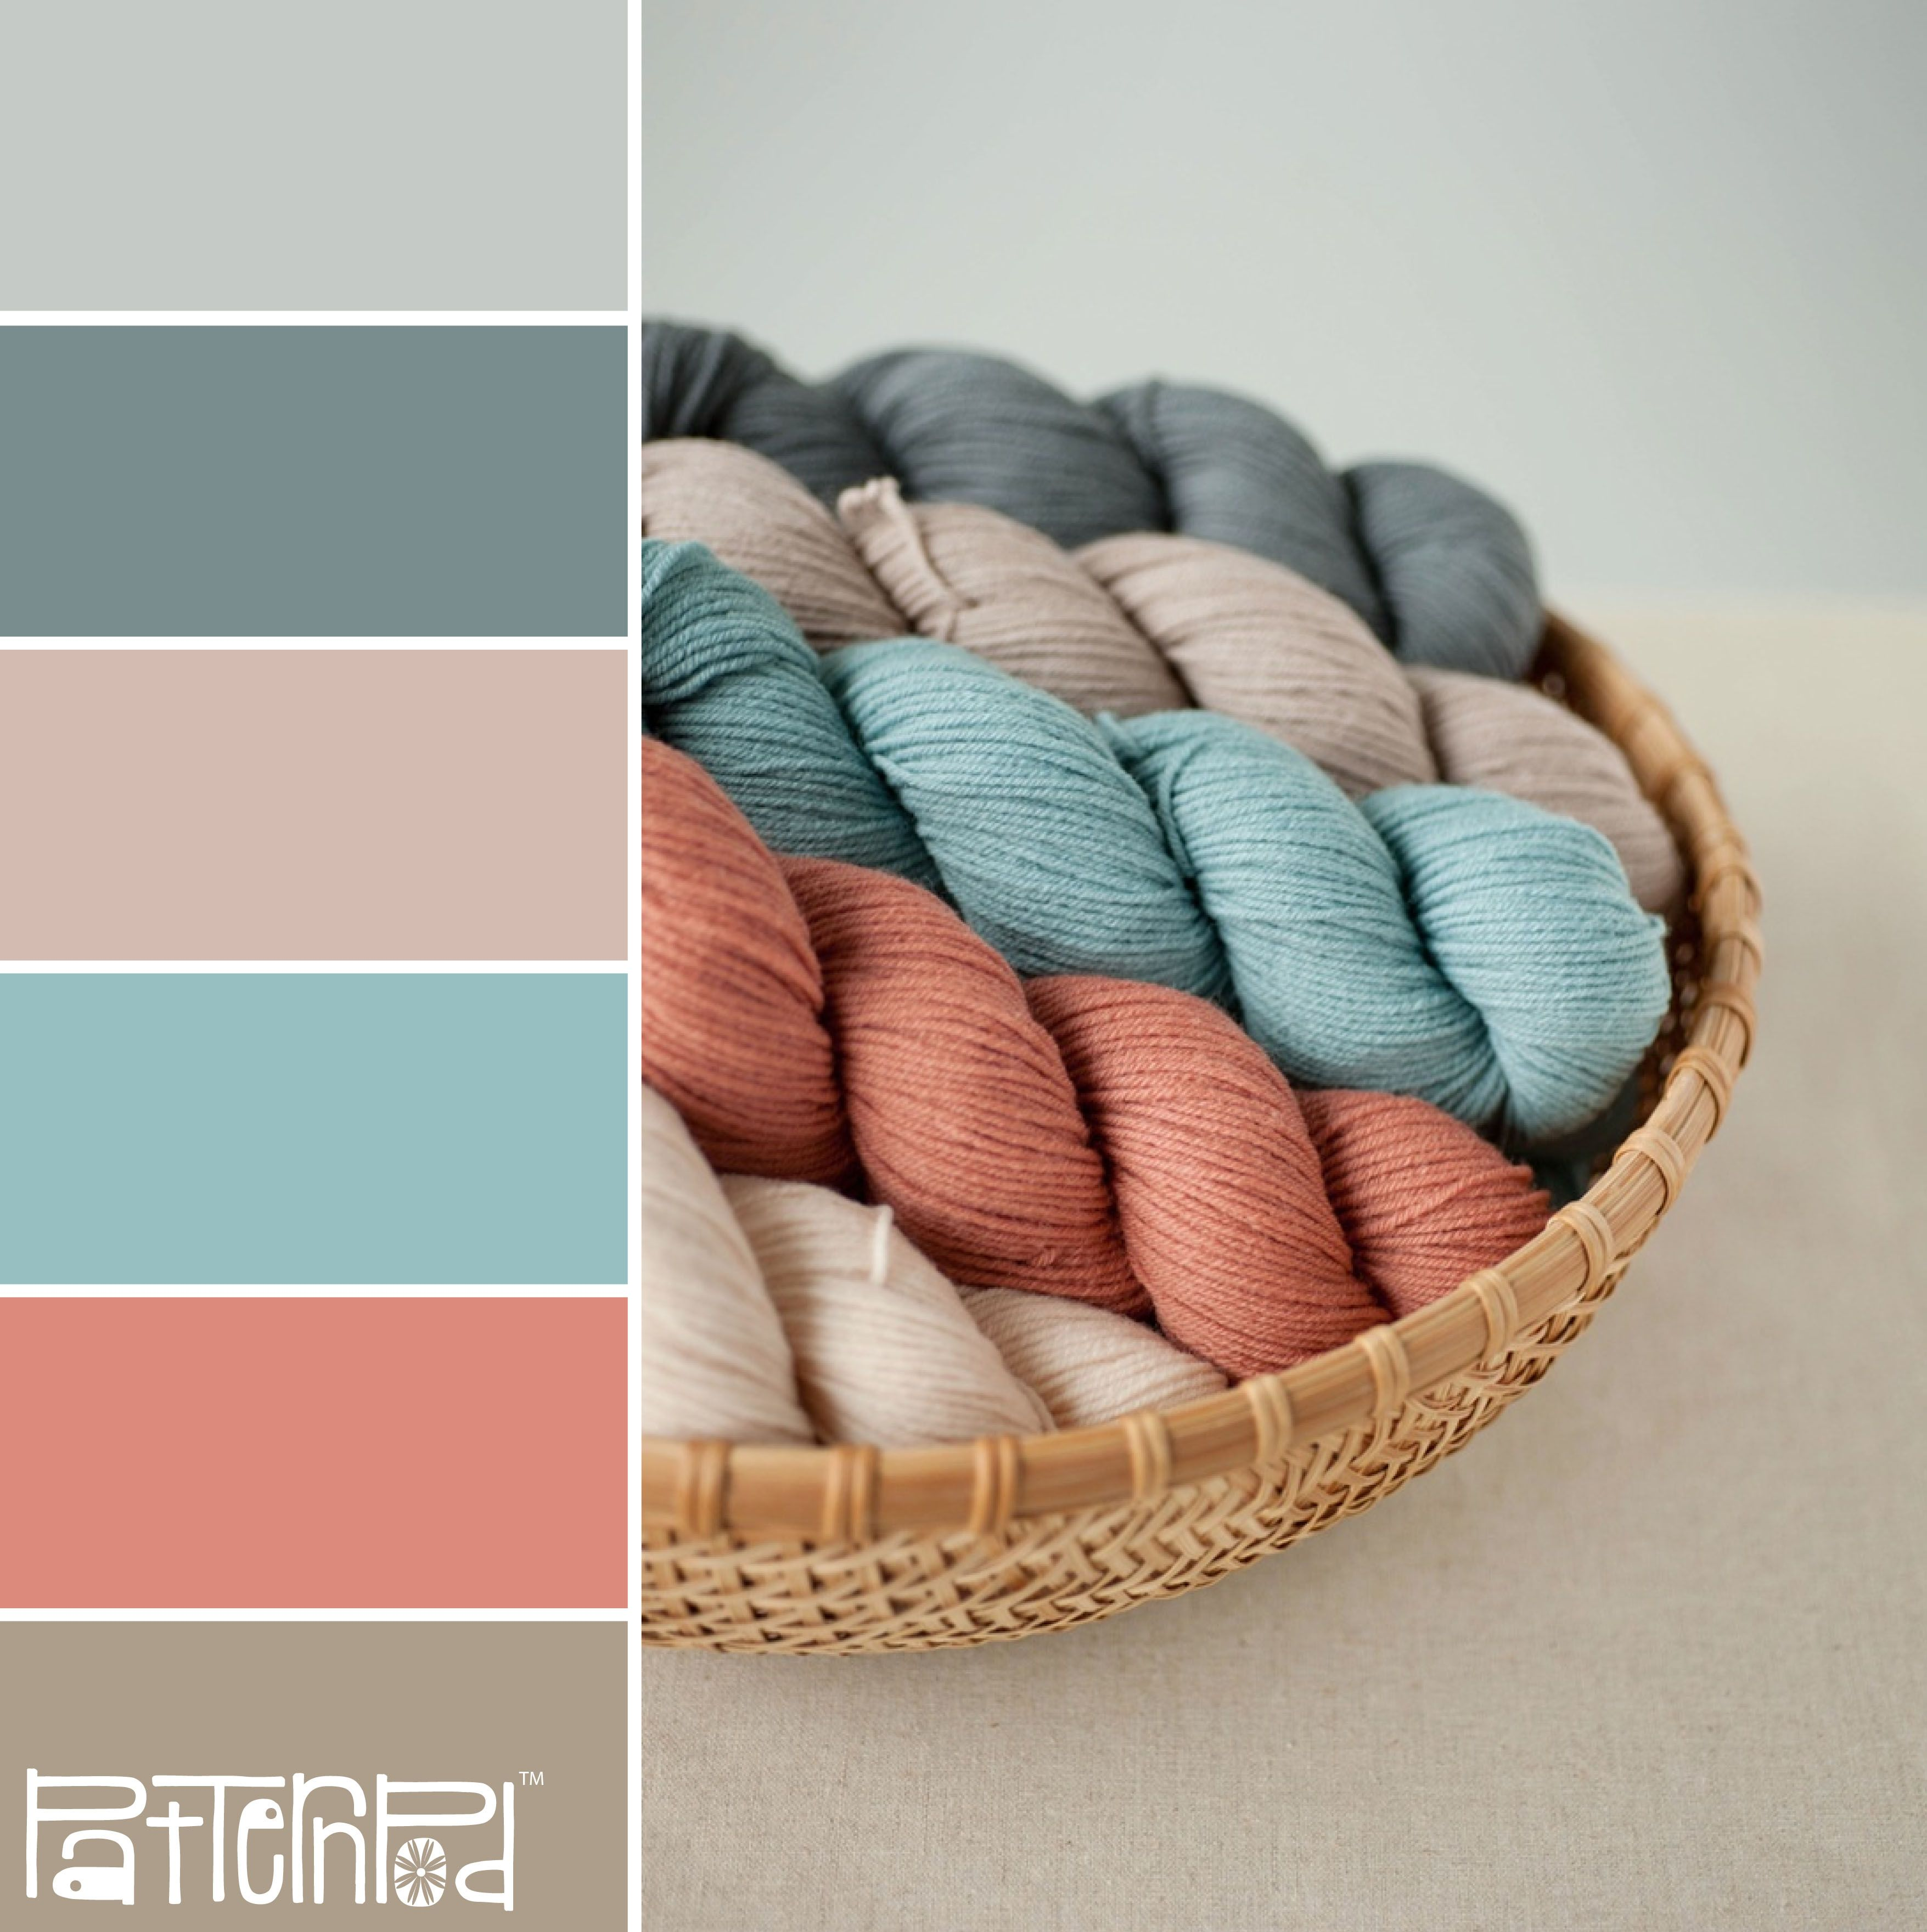 Aec652630De824Aa7D7B5D11Fbc36Ad9 3,511 3,521 Pixels Yarn Colorswool Yarnwool Threadcoral Colour Paletteturquoise